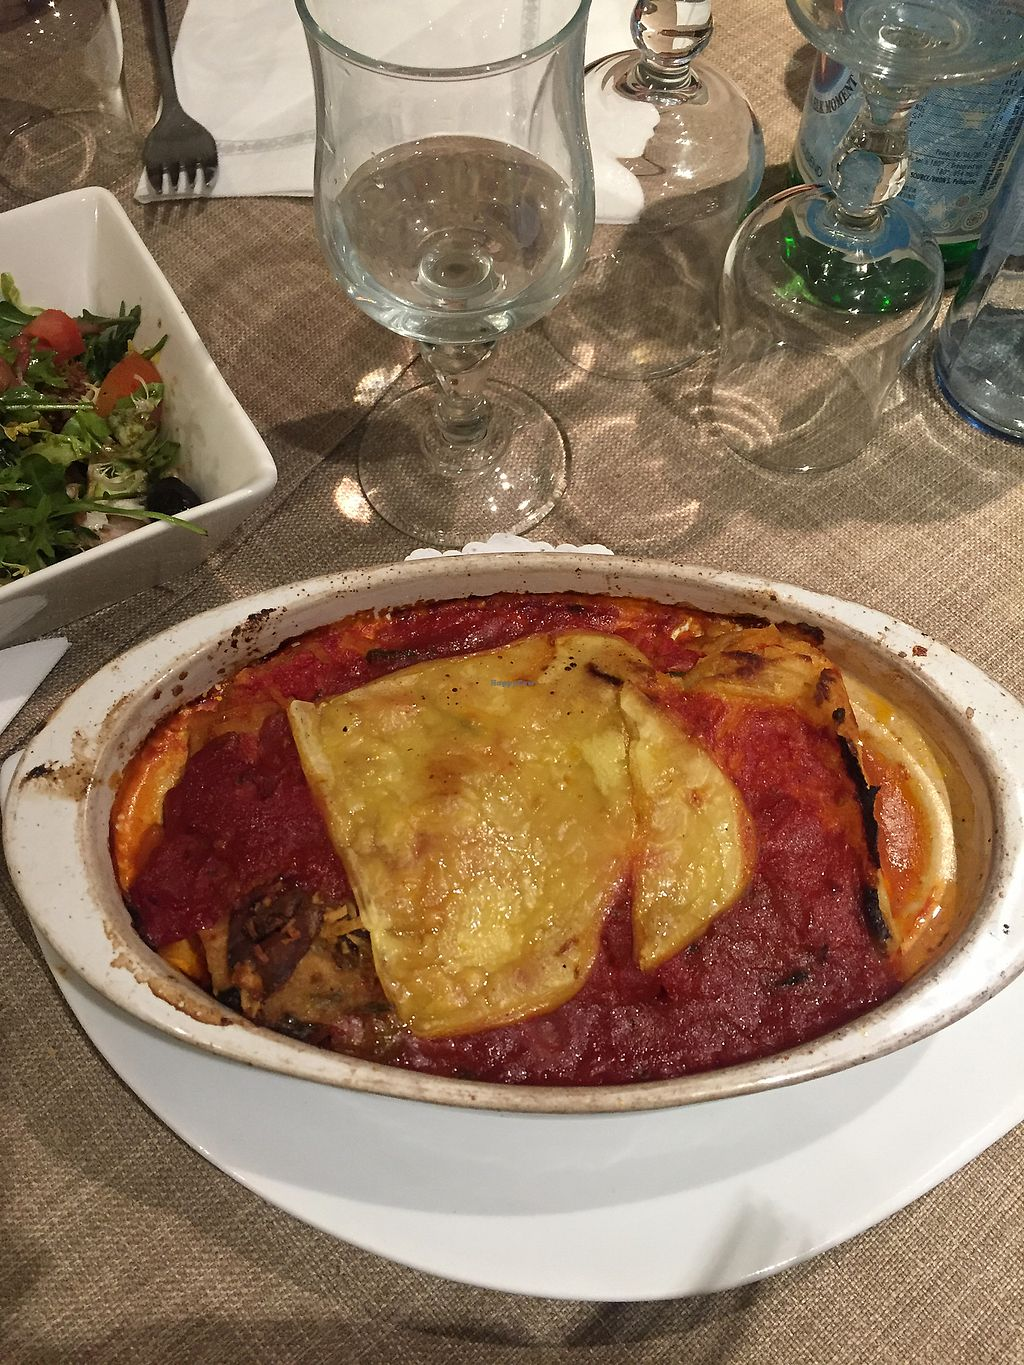 "Photo of Sous un Ciel d'Italie  by <a href=""/members/profile/auroreFR"">auroreFR</a> <br/>Vegetable lasagnas  <br/> January 24, 2018  - <a href='/contact/abuse/image/109465/350545'>Report</a>"